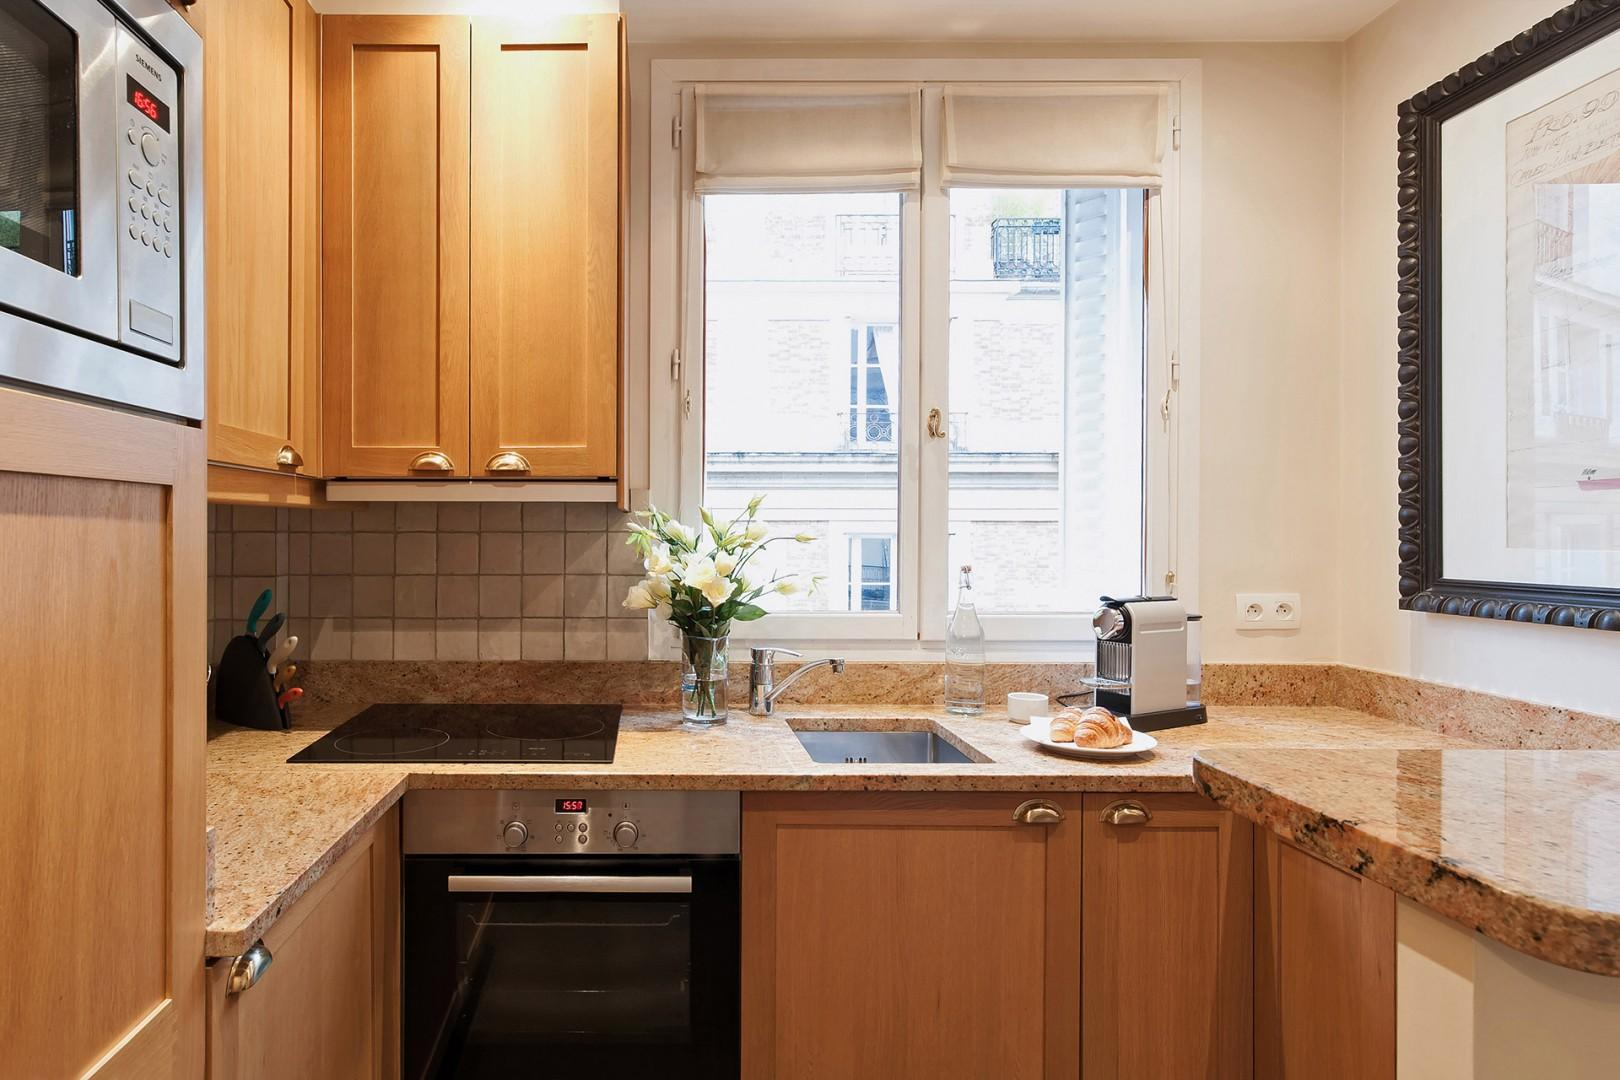 Enjoy cooking in this modern designer kitchen with cherrywood and granite.